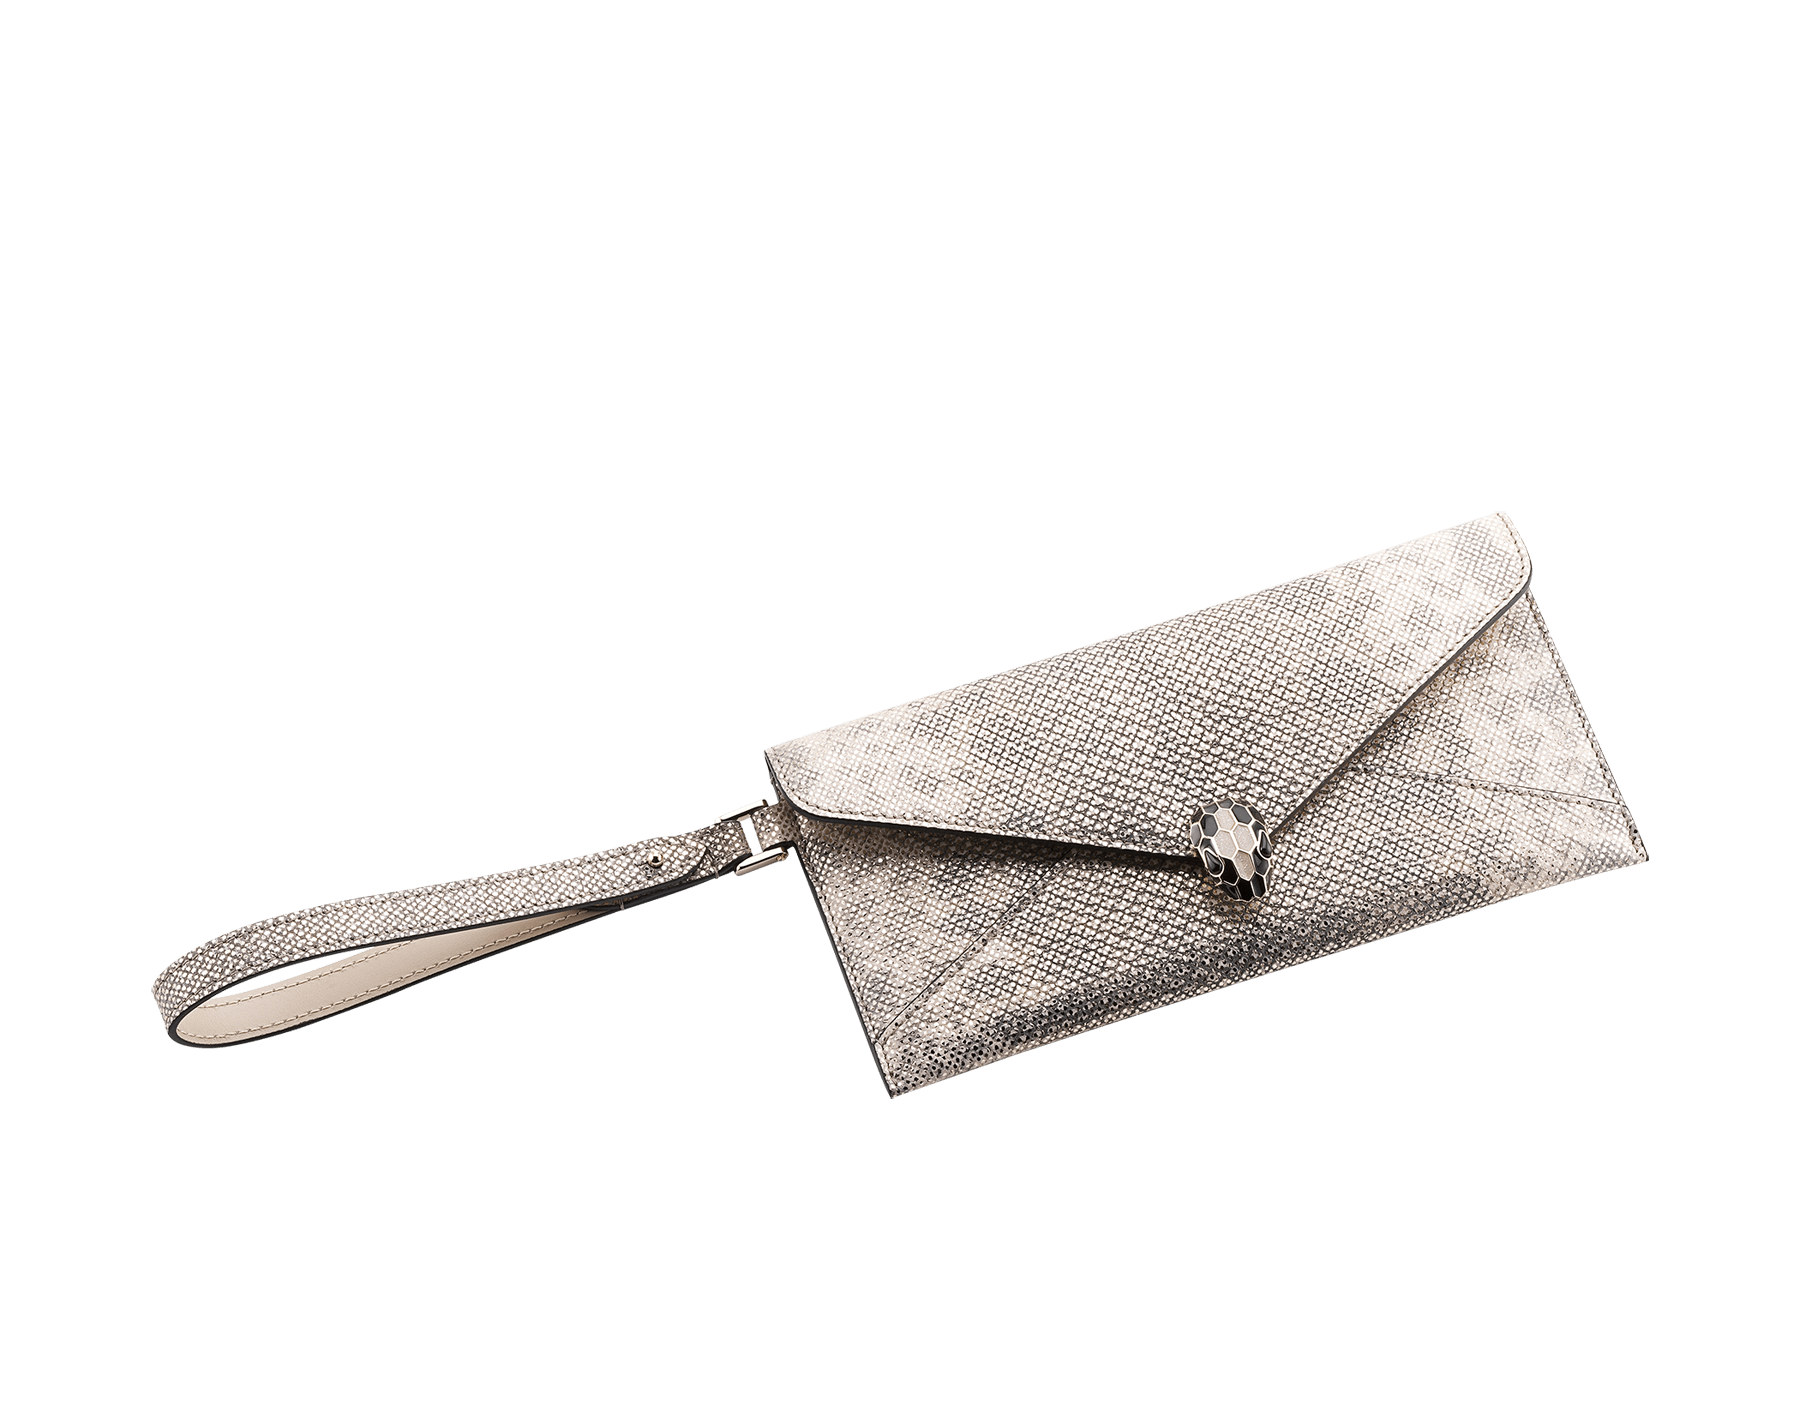 Serpenti Forever envelope case in milky opal metallic karung skin and milky opal calf leather. Iconic snakehead stud closure in black and glitter milky opal enamel, with black onyx eyes. SEA-ENVELOPE-MK image 1